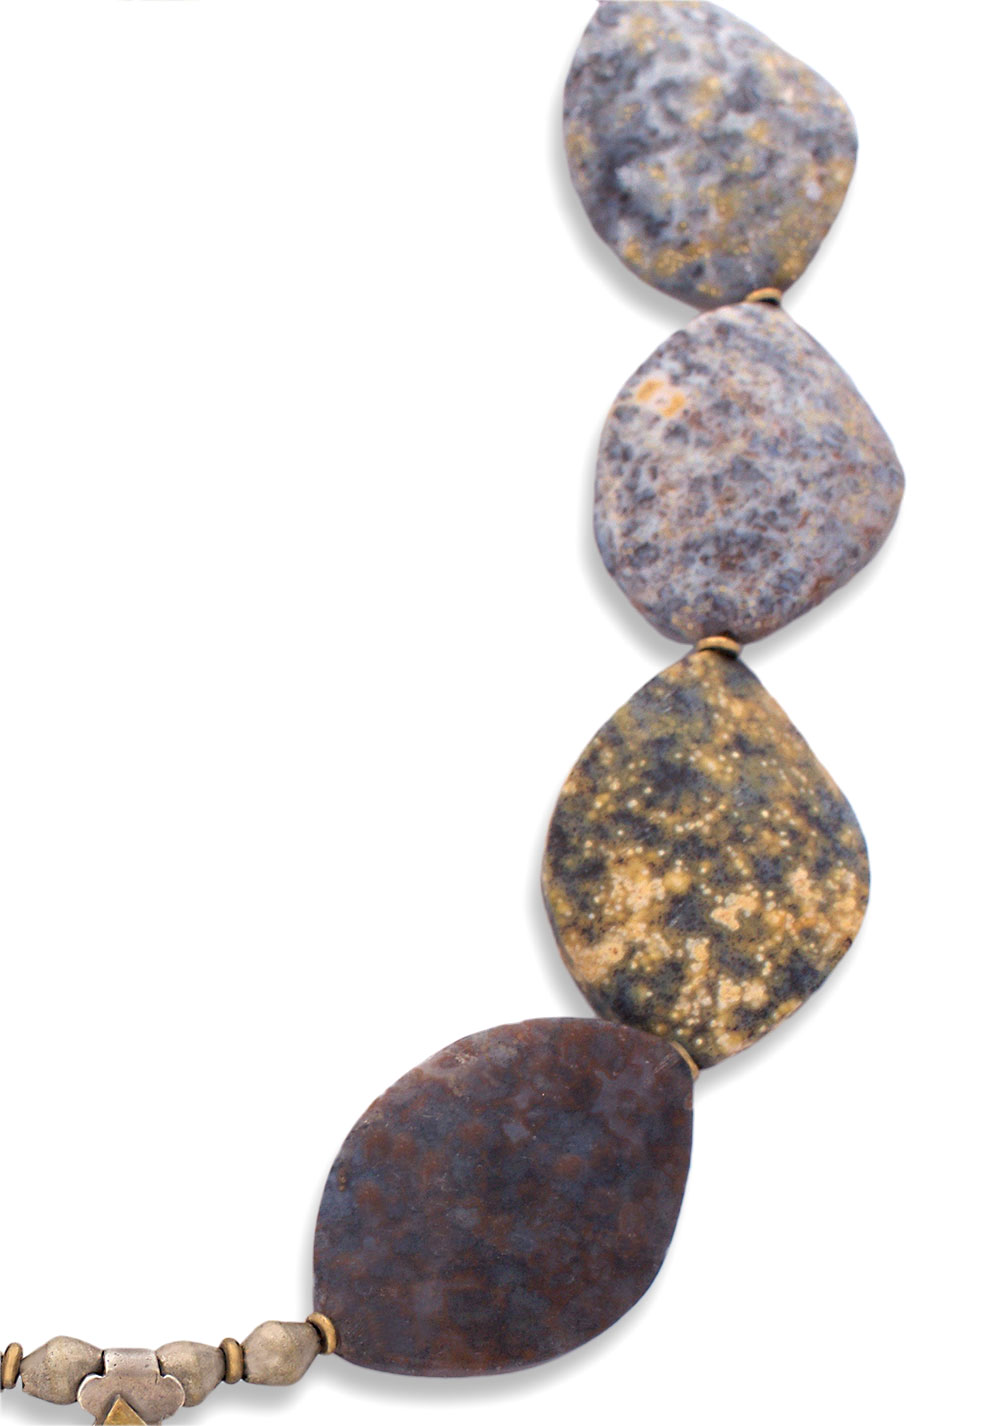 Orbicular Jasper Statement Necklace by SHIKHAZURI